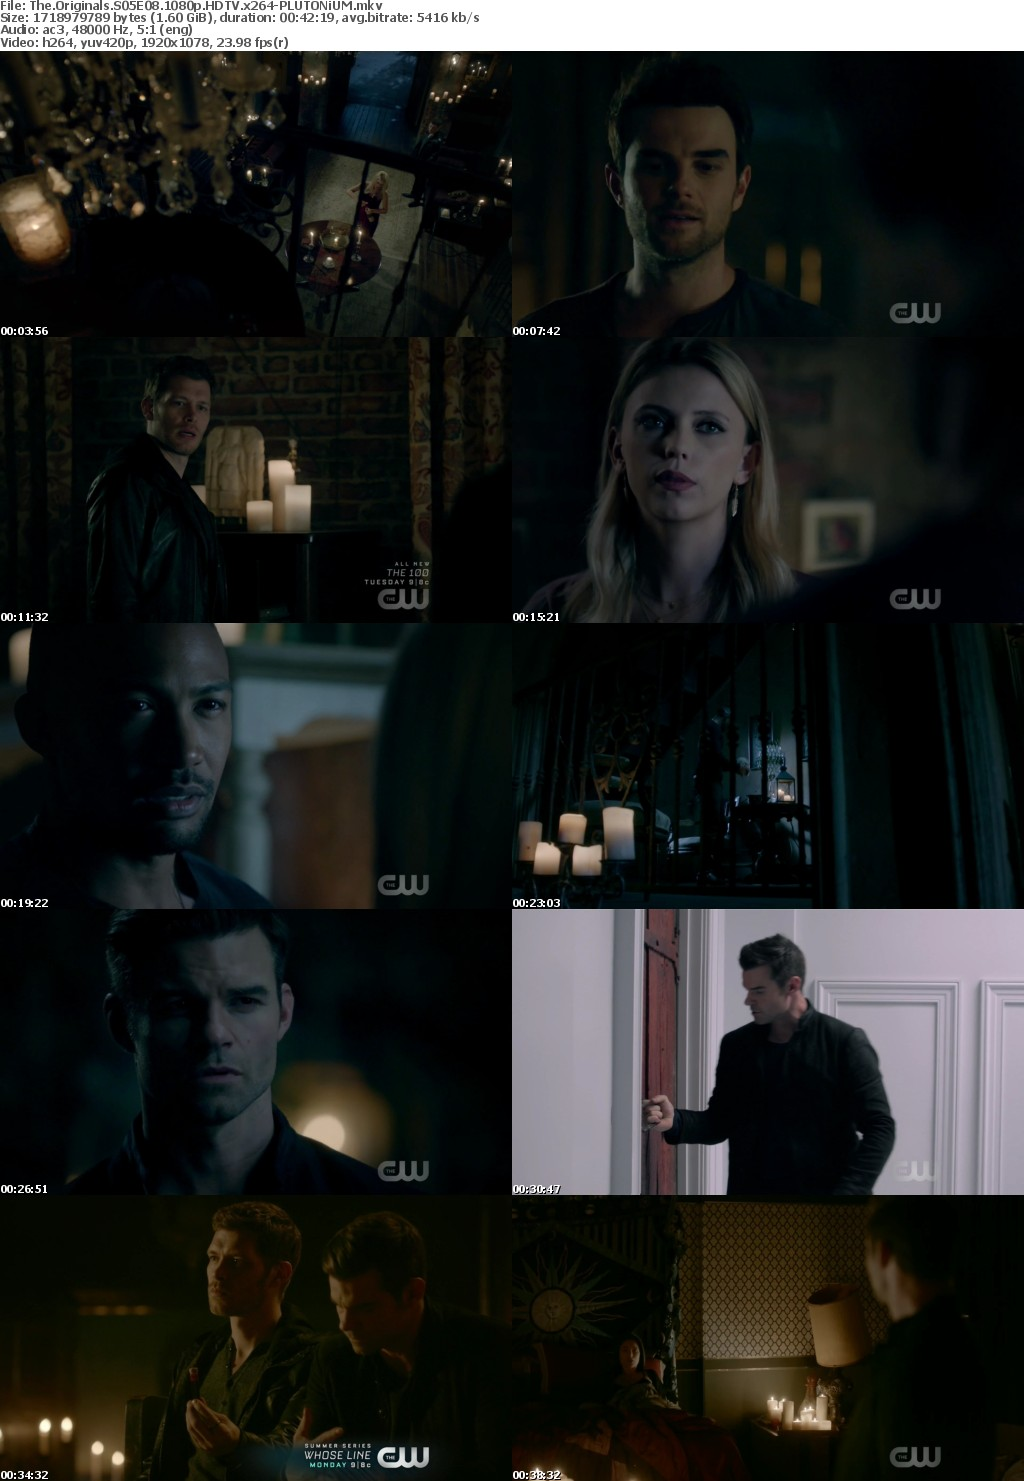 The Originals S05E08 1080p HDTV x264-PLUTONiUM